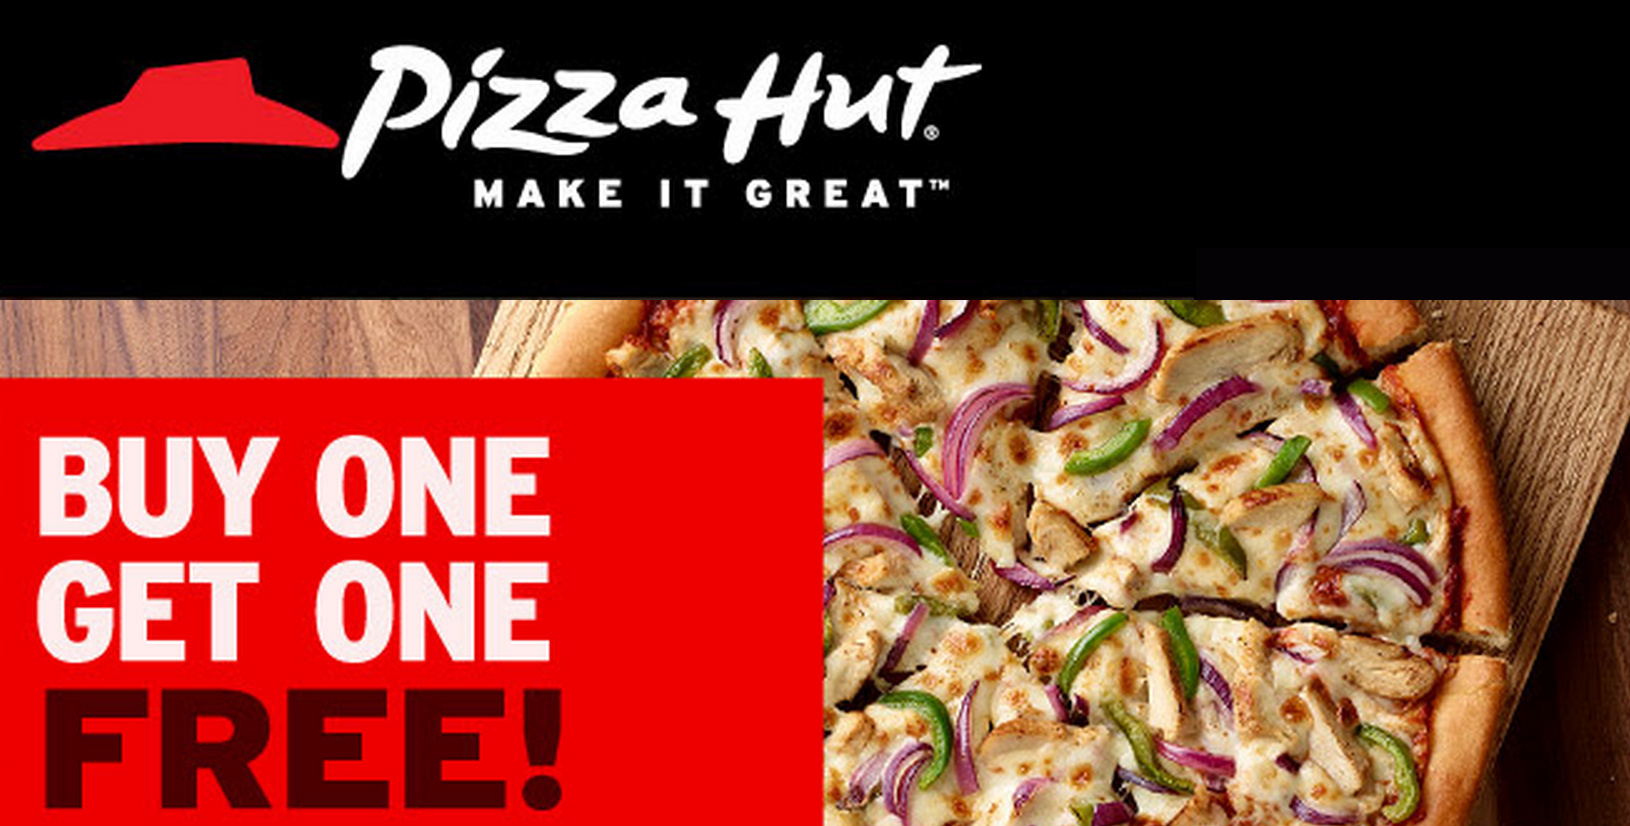 picture regarding Pizza Hut Printable Application known as Pizza Hut Canada Promo Codes: Acquire 1 Pizza Consider 1 Absolutely free *Incredibly hot